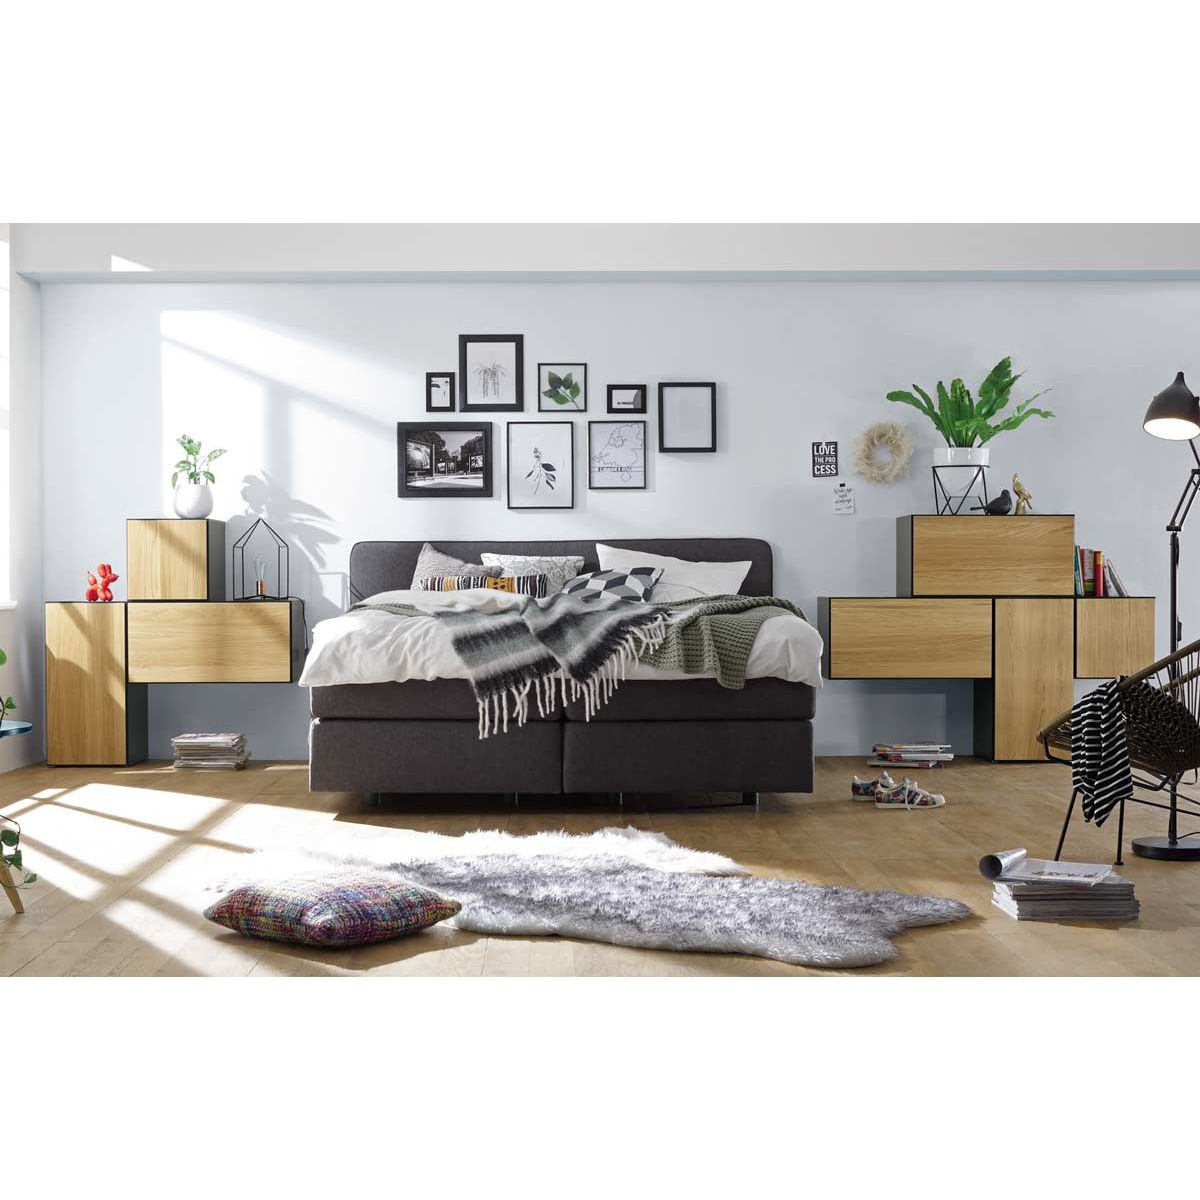 h lsta now to go kombination 1 mit 7 boxen grau natur. Black Bedroom Furniture Sets. Home Design Ideas